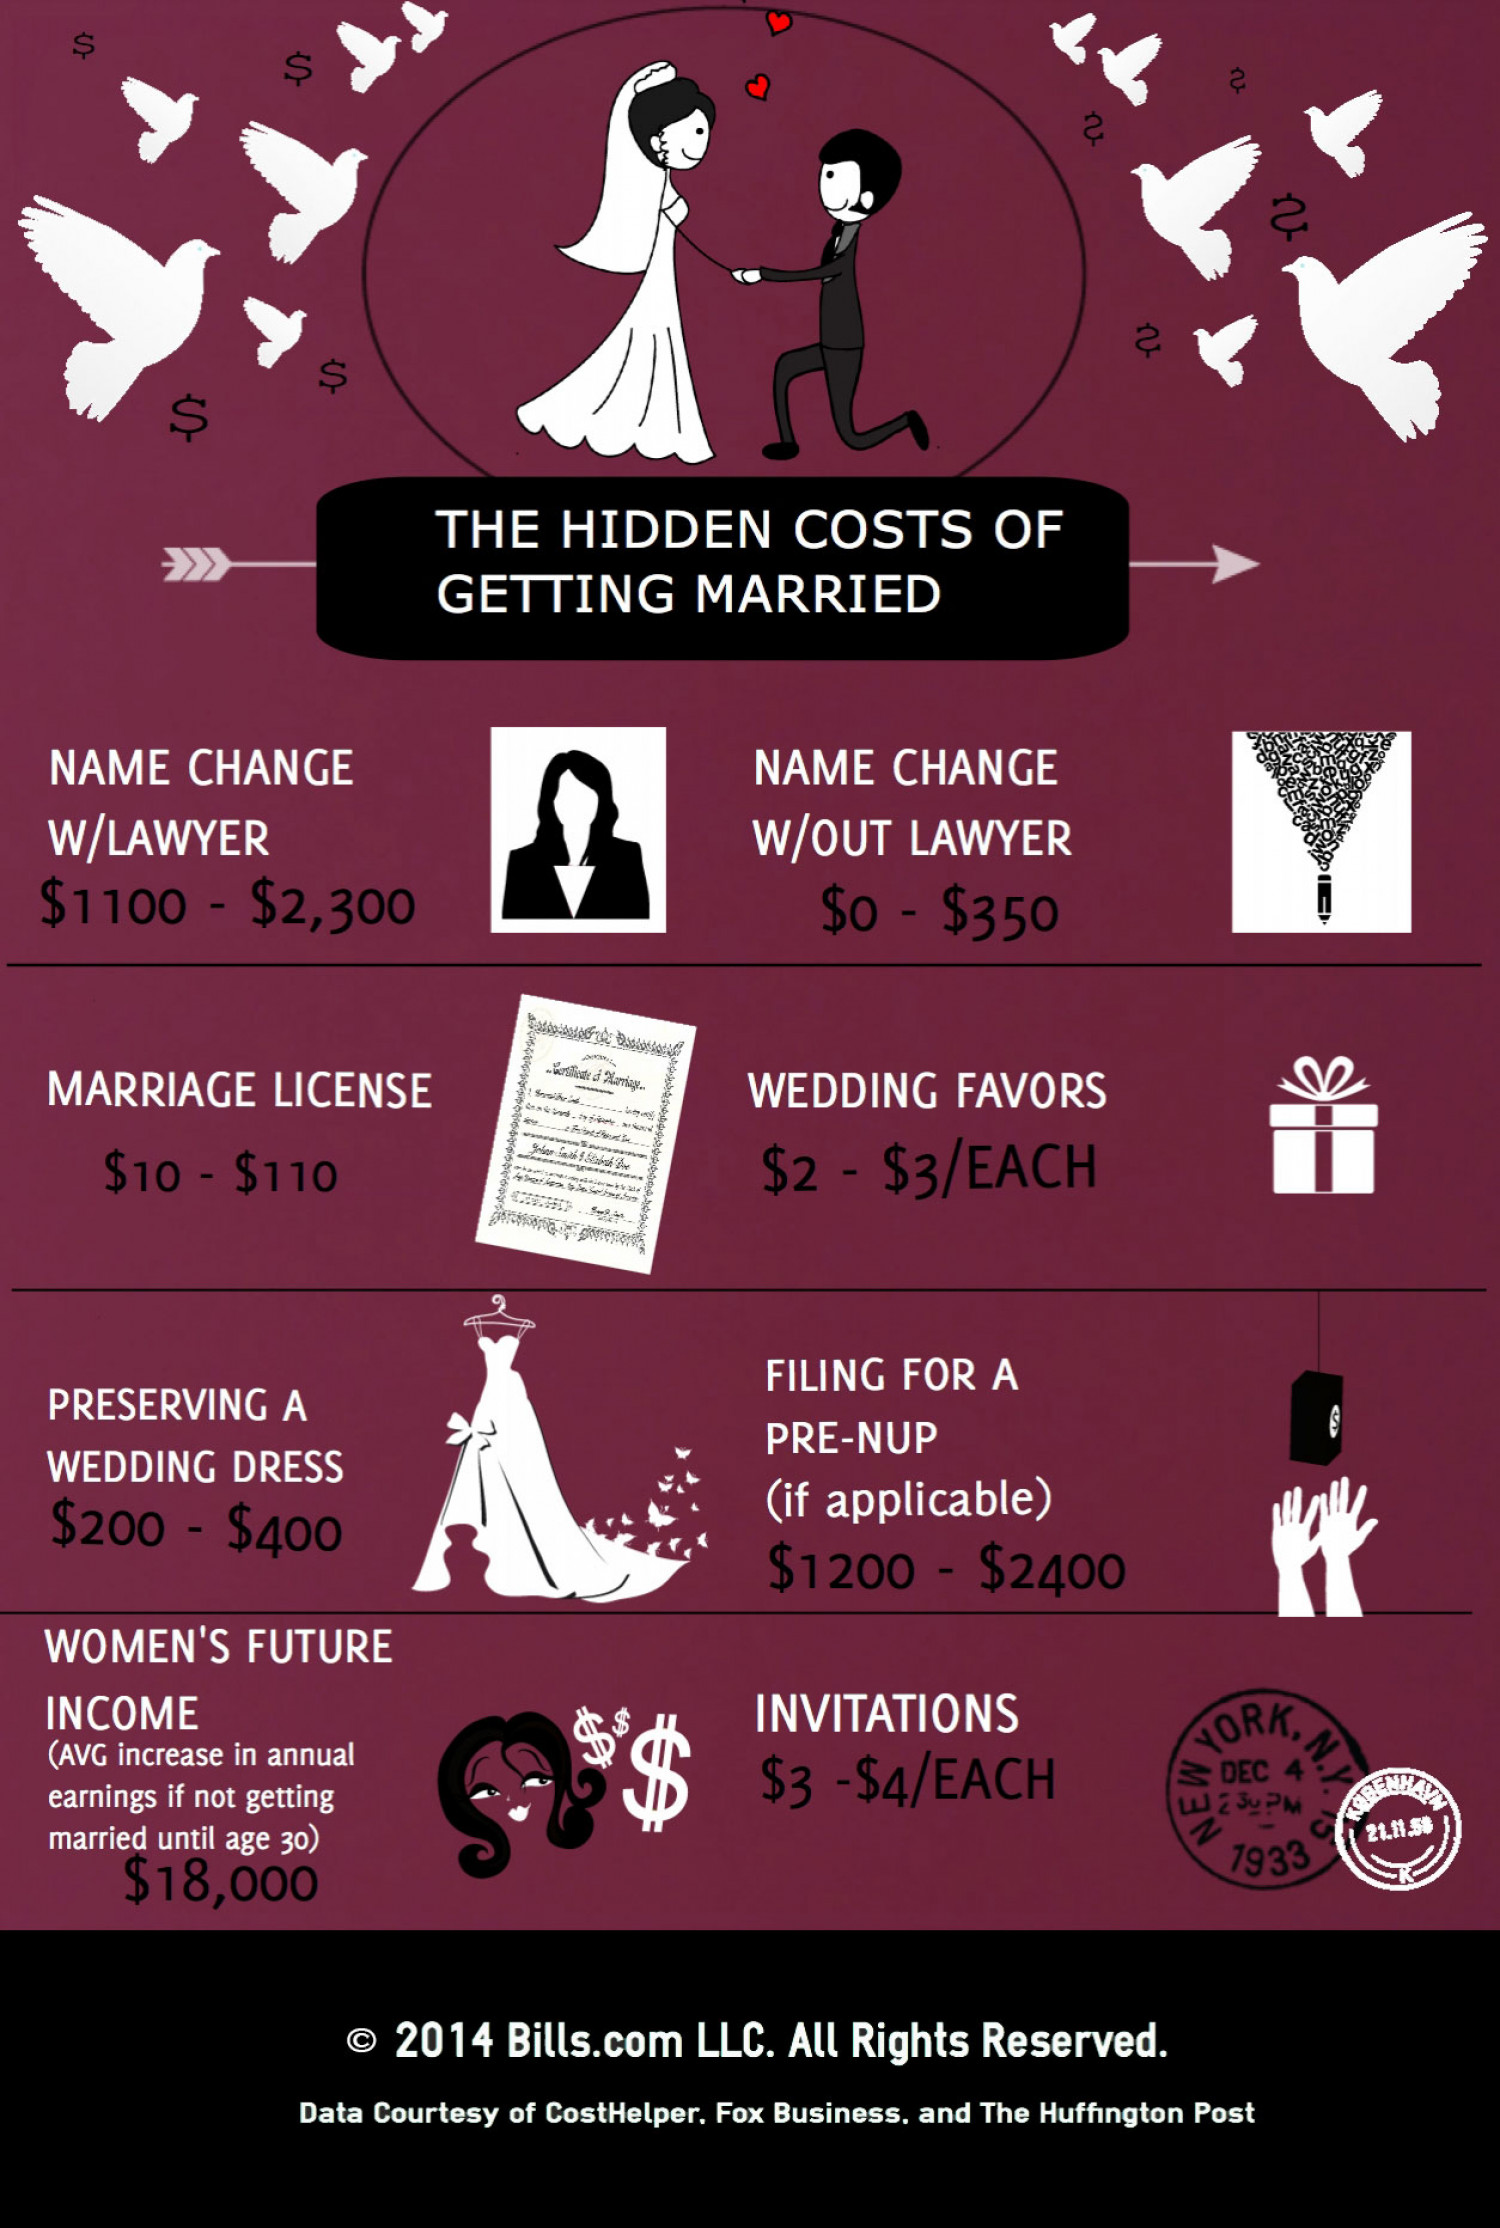 The Hidden Costs Of Getting Married Infographic